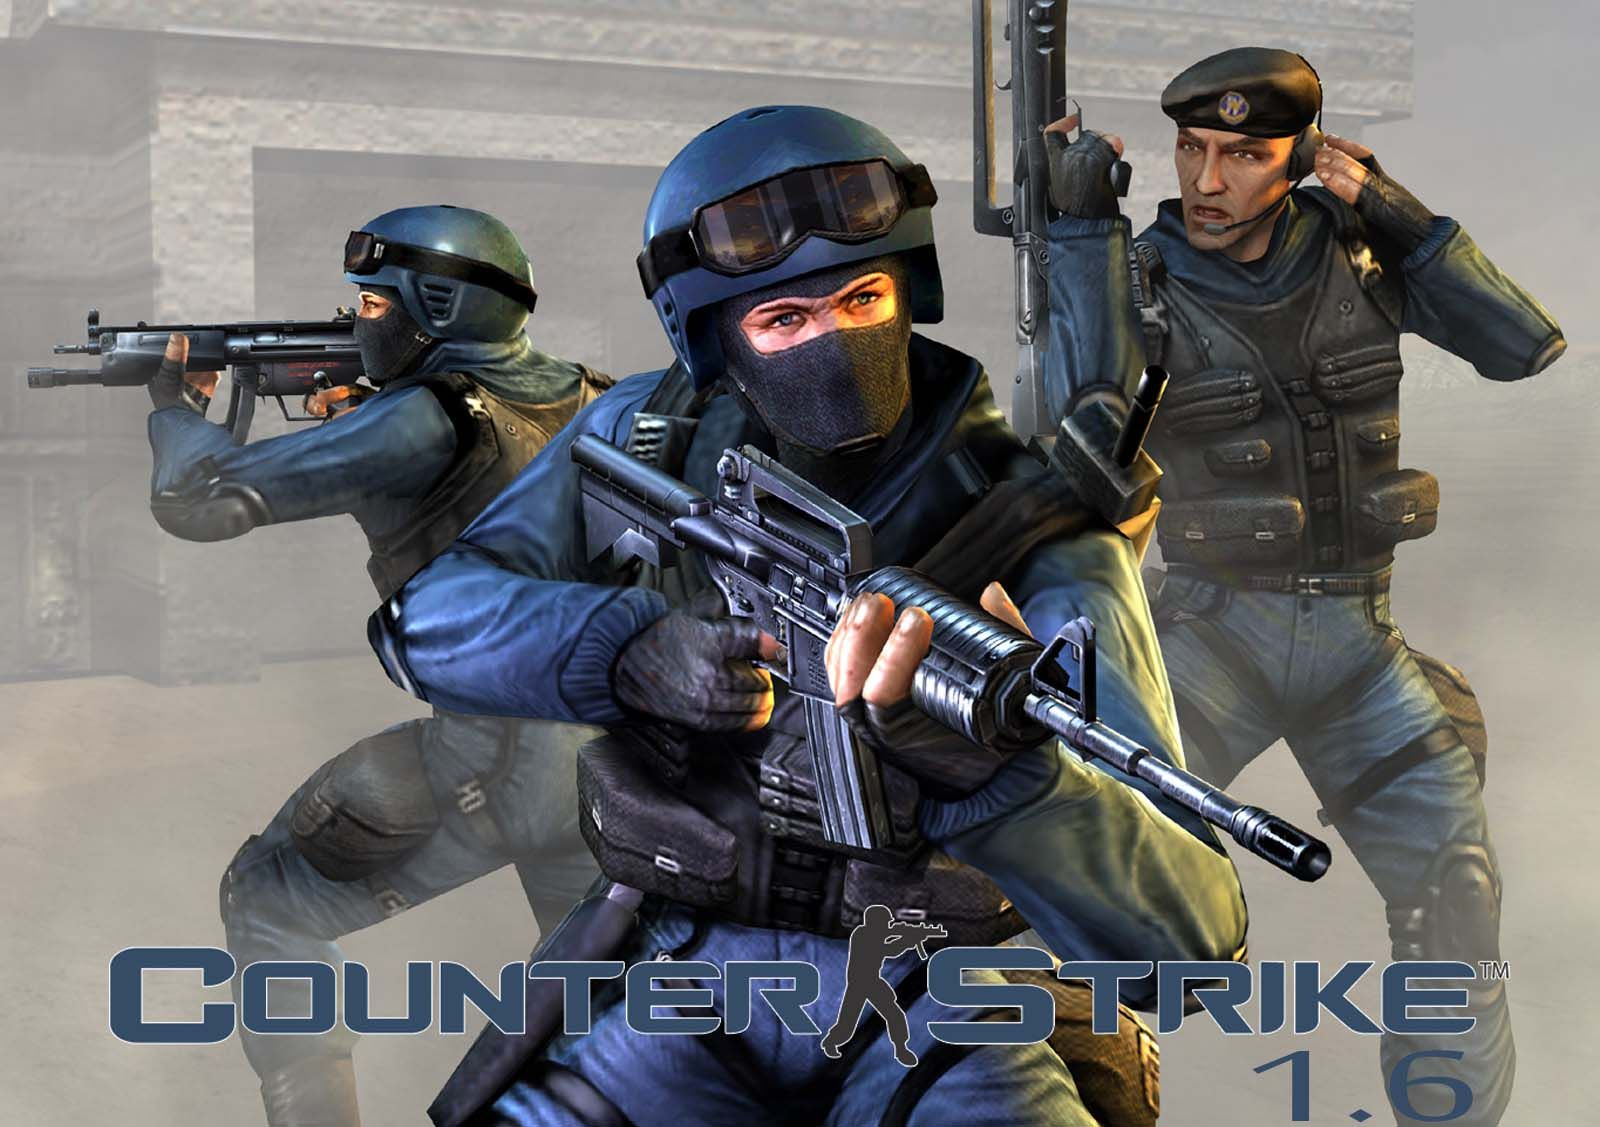 Counter Strike 1 6 Pc Game Free Download Full Version From Online To Here Fantastic This Shooting Video Game Play On Your Video Game Posters Counter Gaming Pc